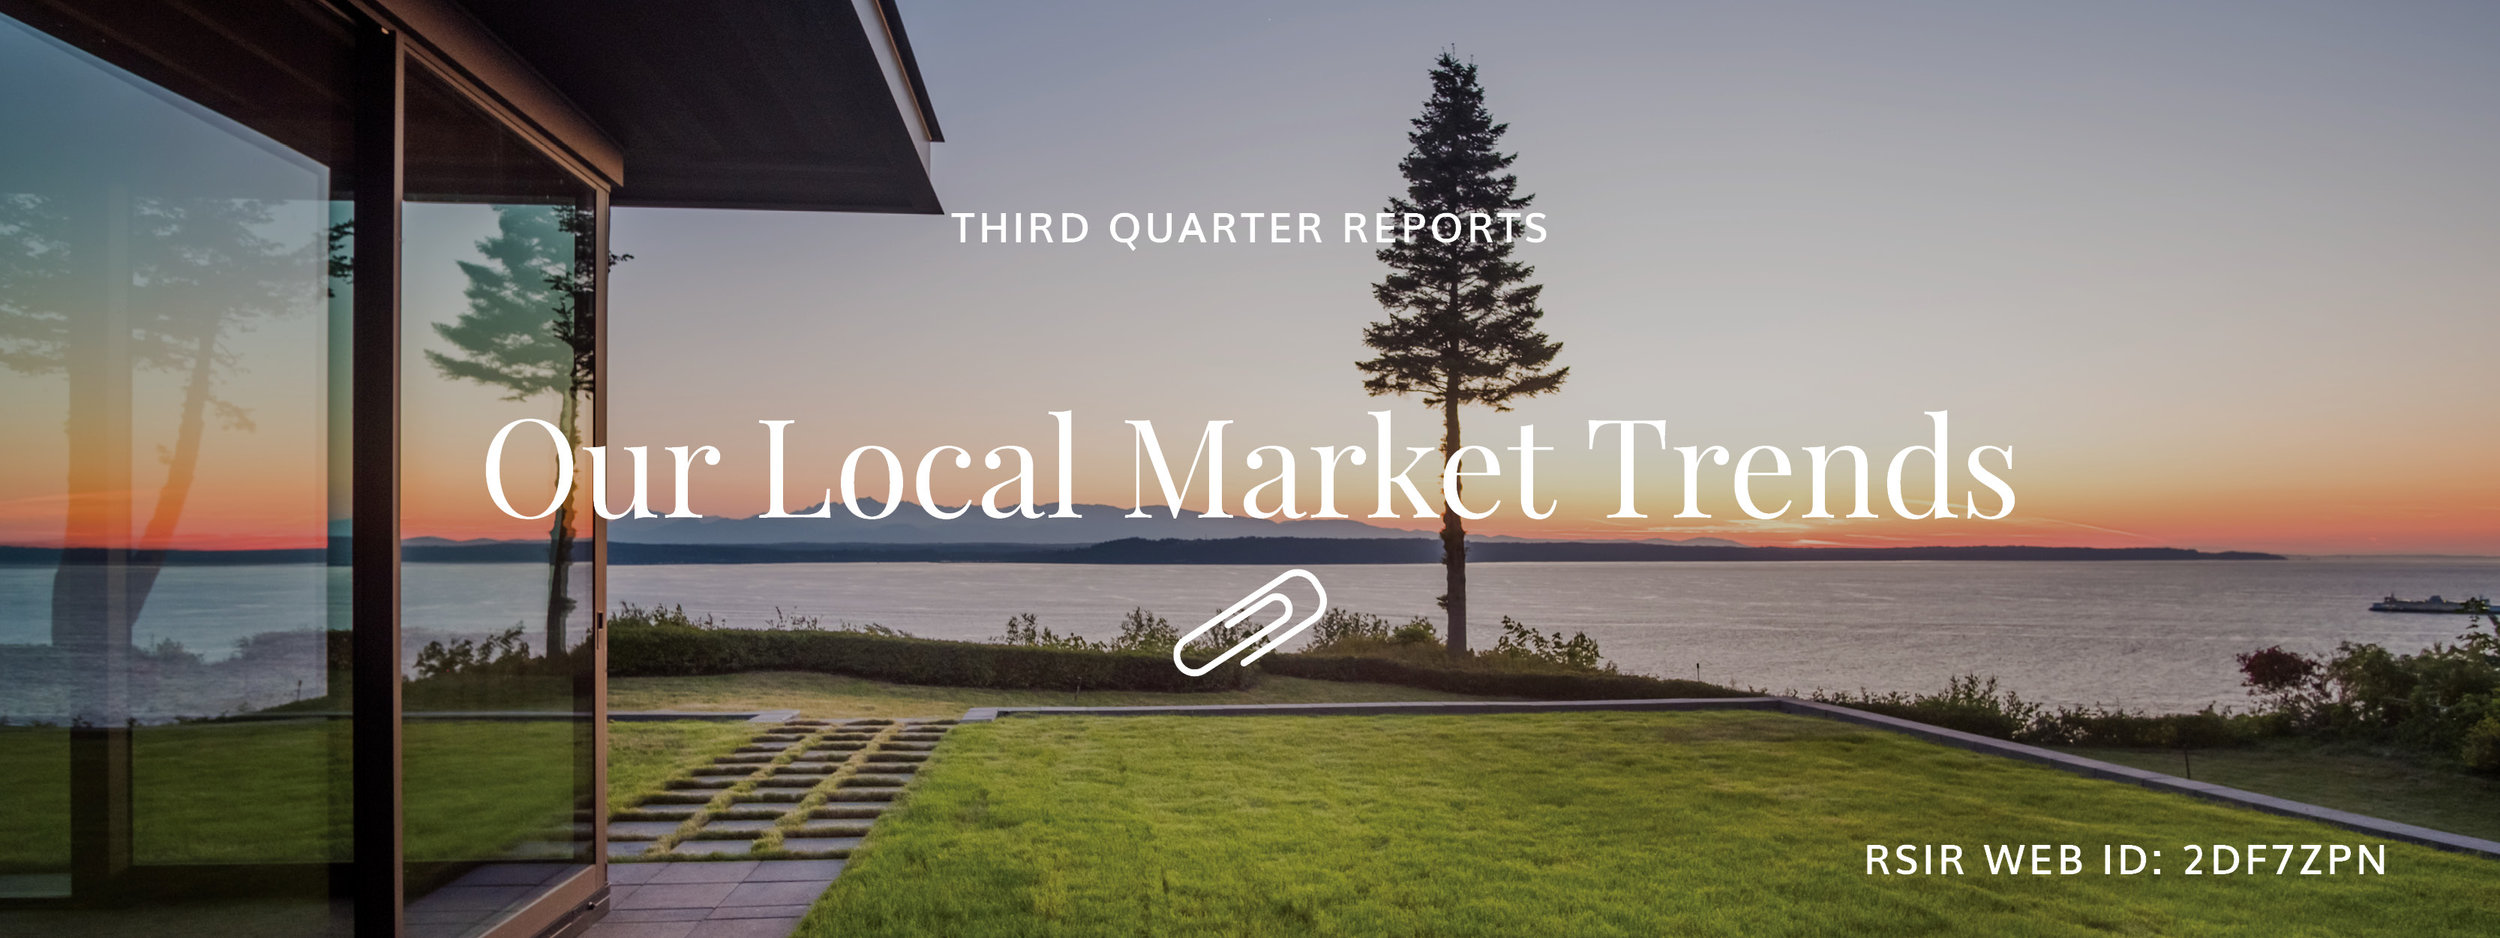 Local Market Trends Q3 2018.jpg